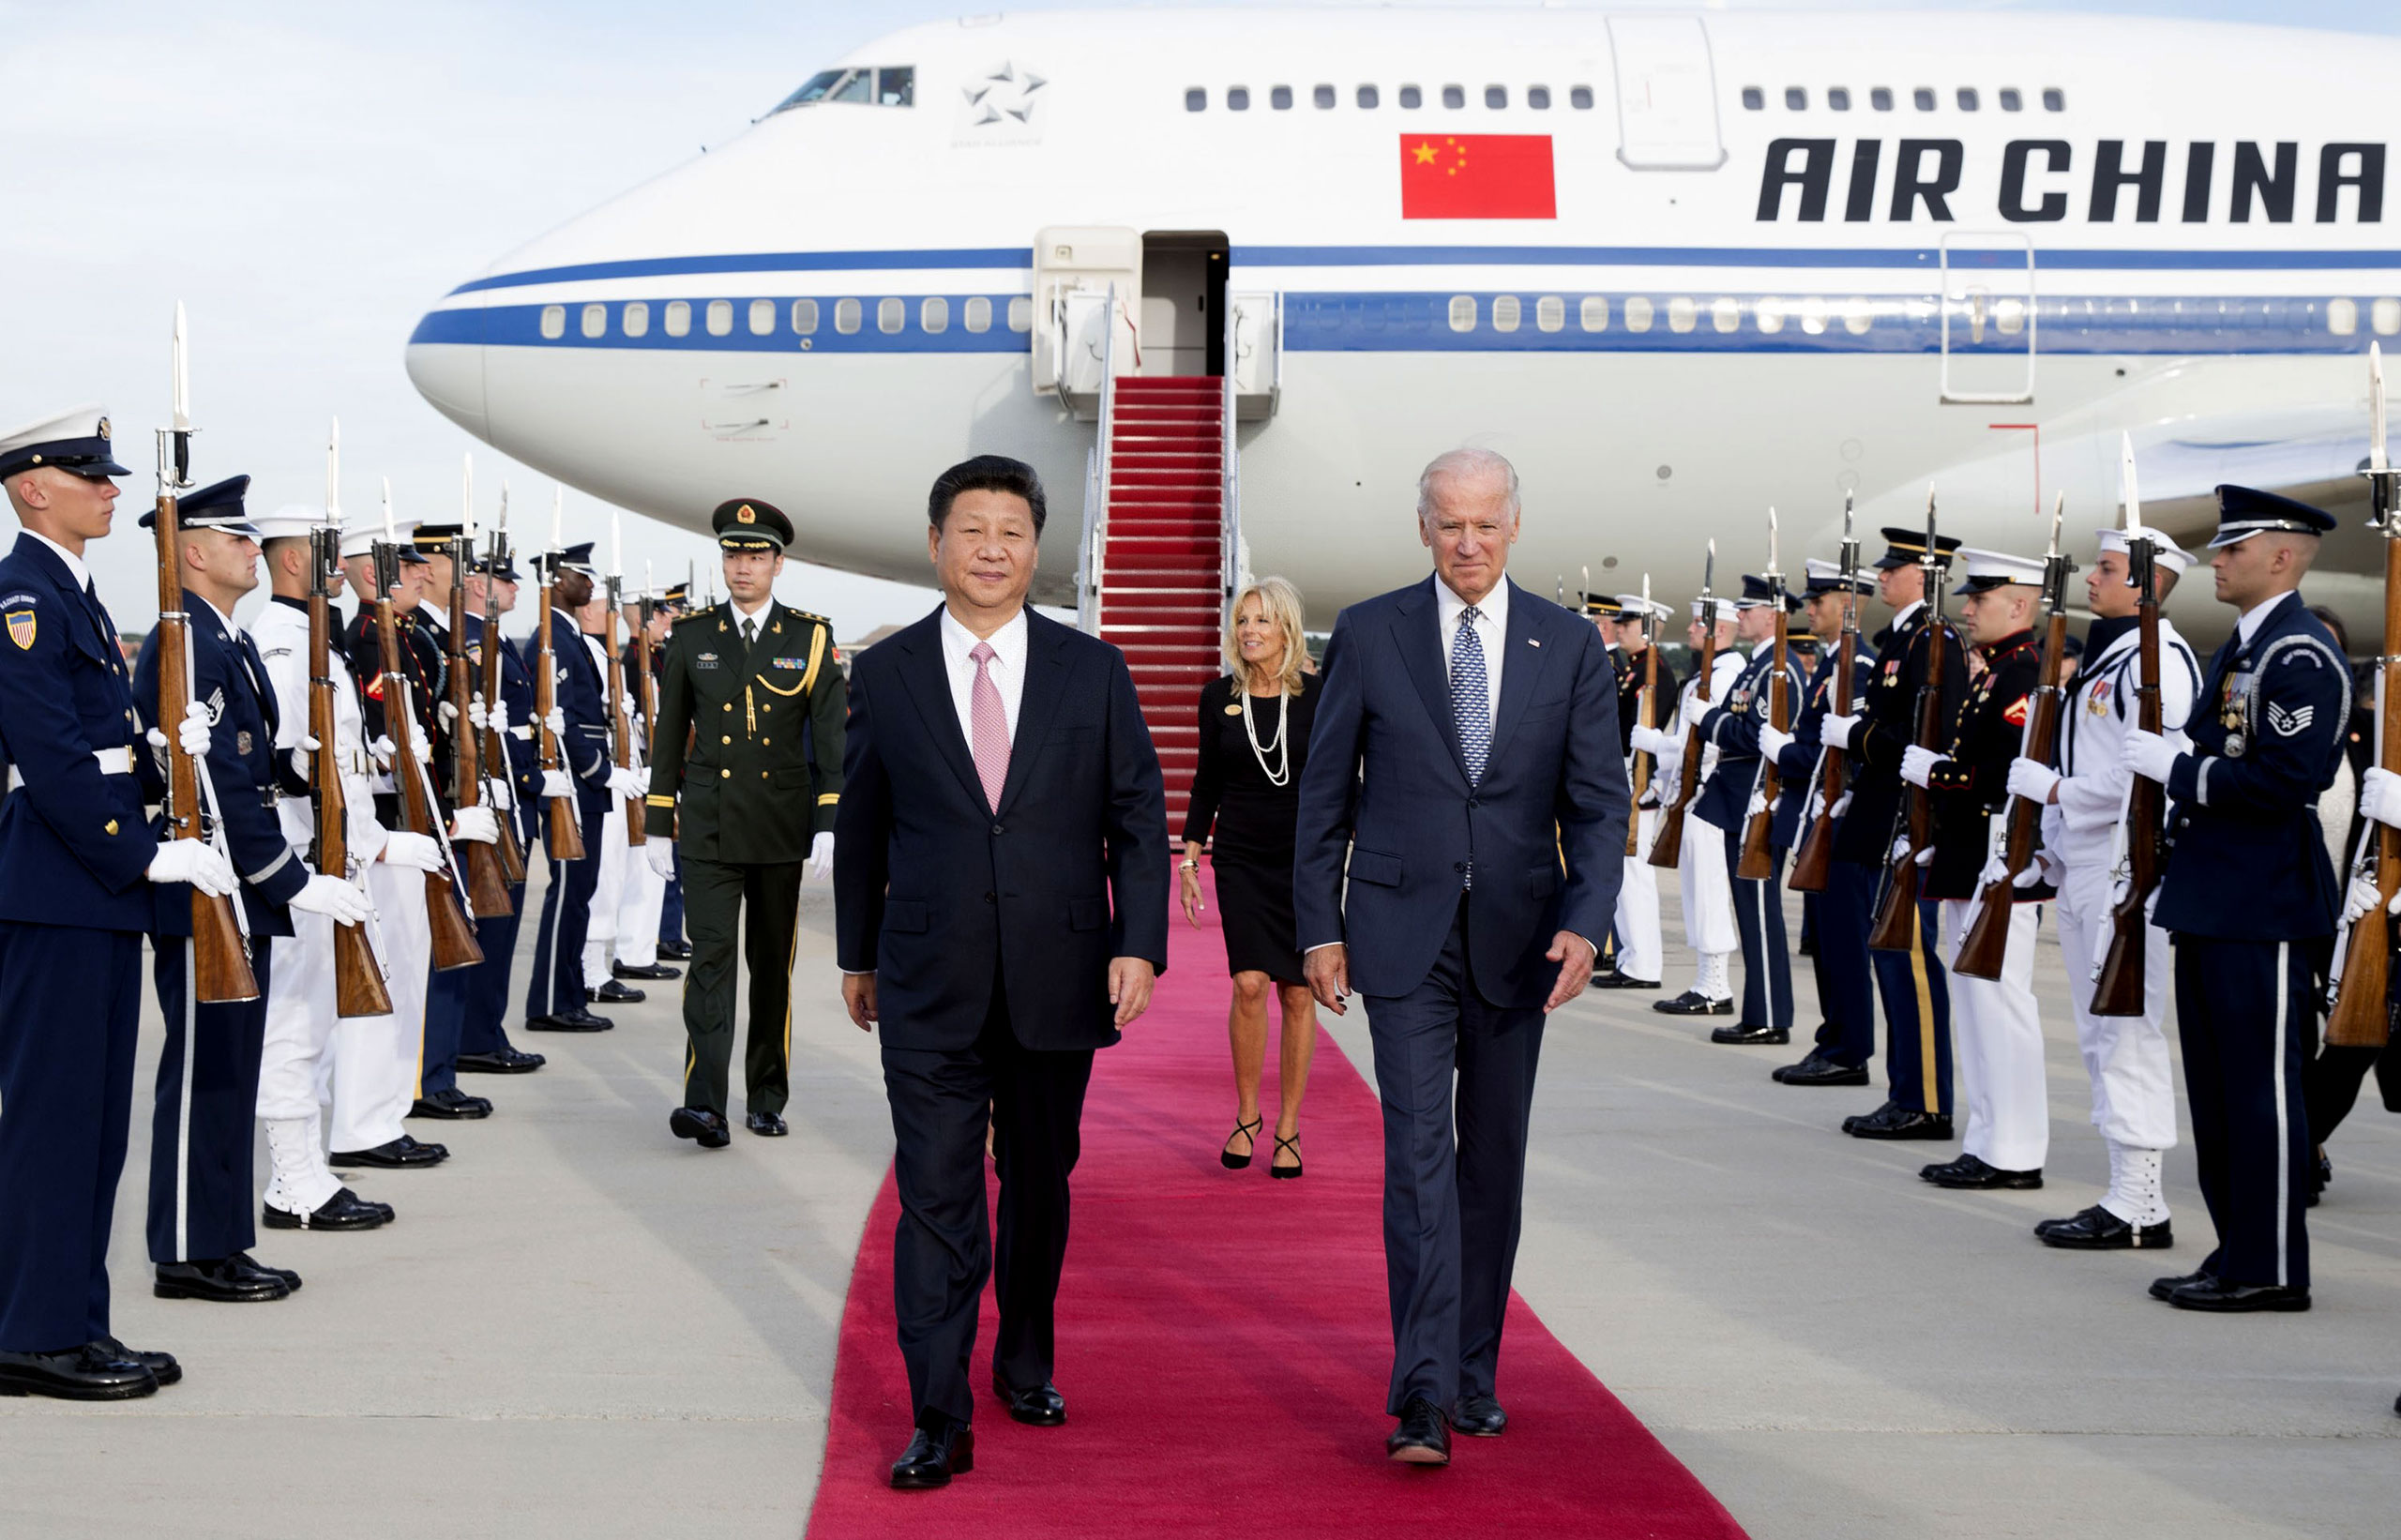 China's President Xi Jinping and his wife Peng Liyuan are welcomed by Vice President Joe Biden and his wife at Andrews Air Force Base in Washington on Sept. 24, 2015.